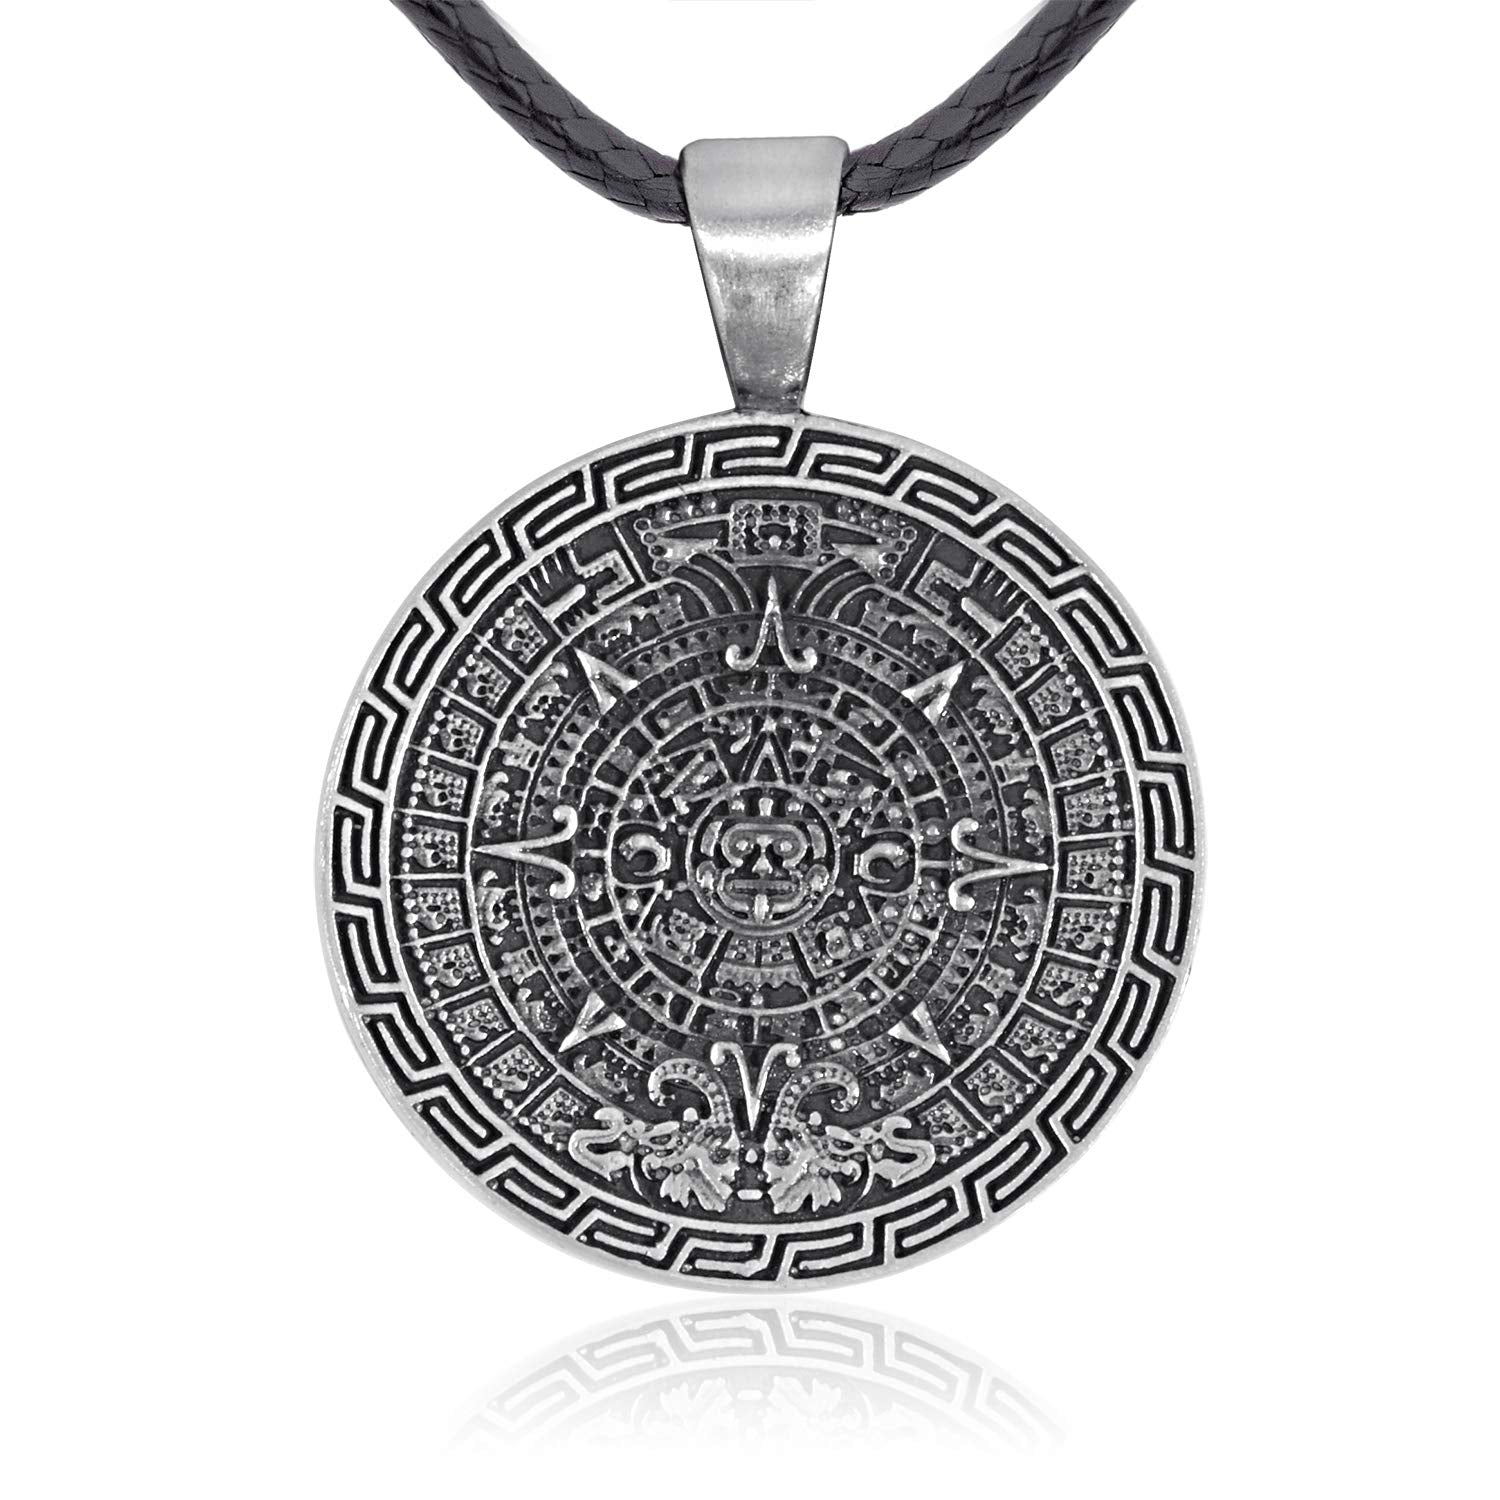 Namaste Jewelers Maya Inspired Mayan Calendar Pendant Necklace Pewter Jewelry